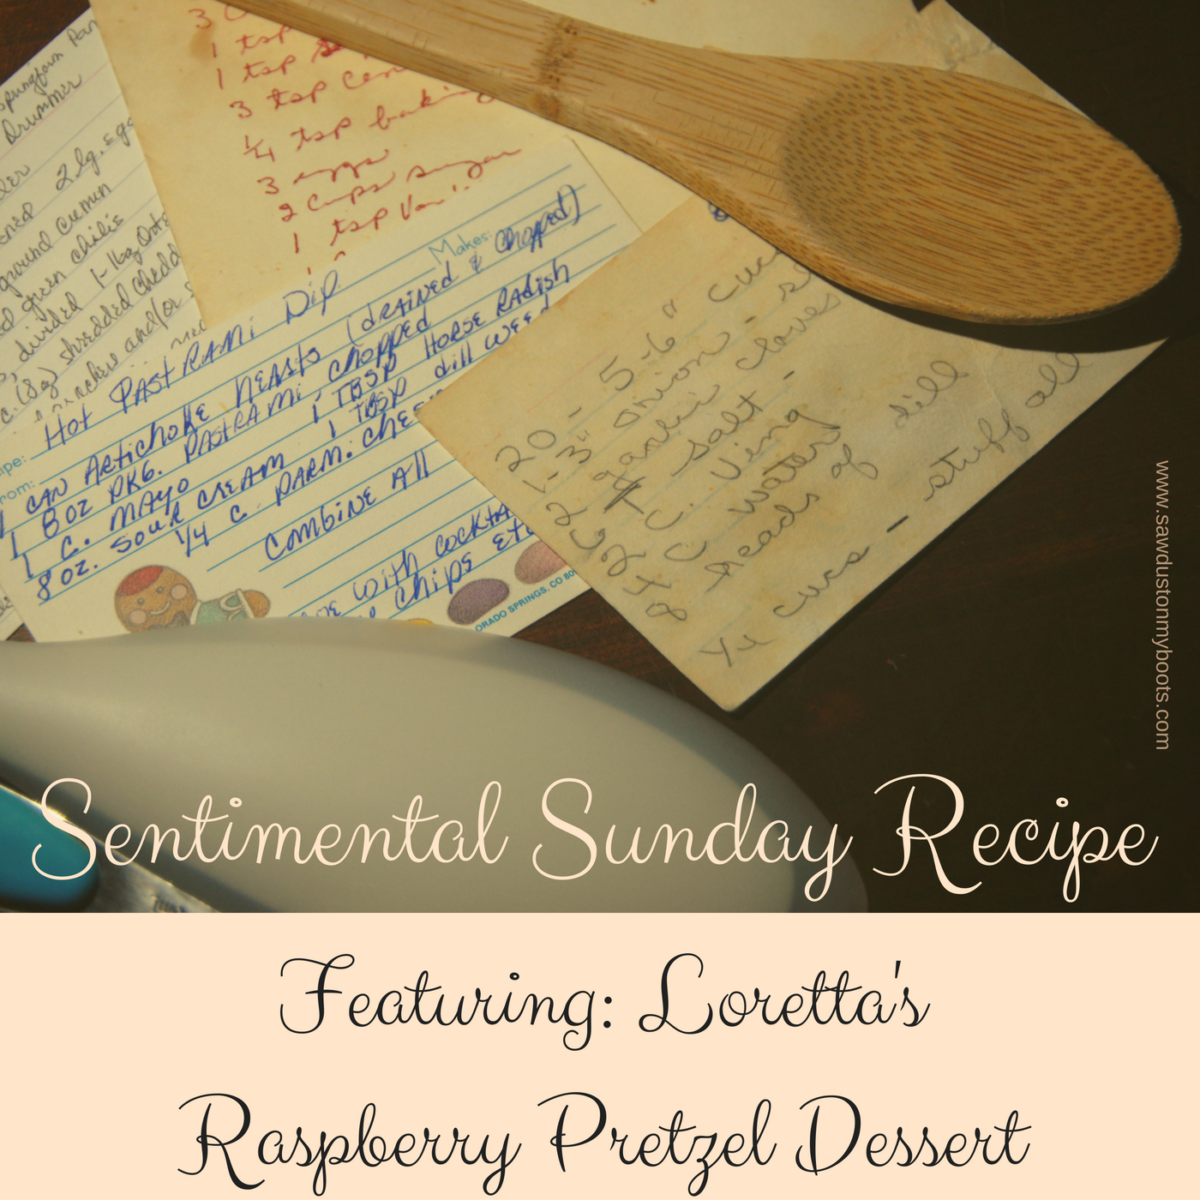 Sentimental Sunday Recipe: Loretta's Raspberry Pretzel Dessert